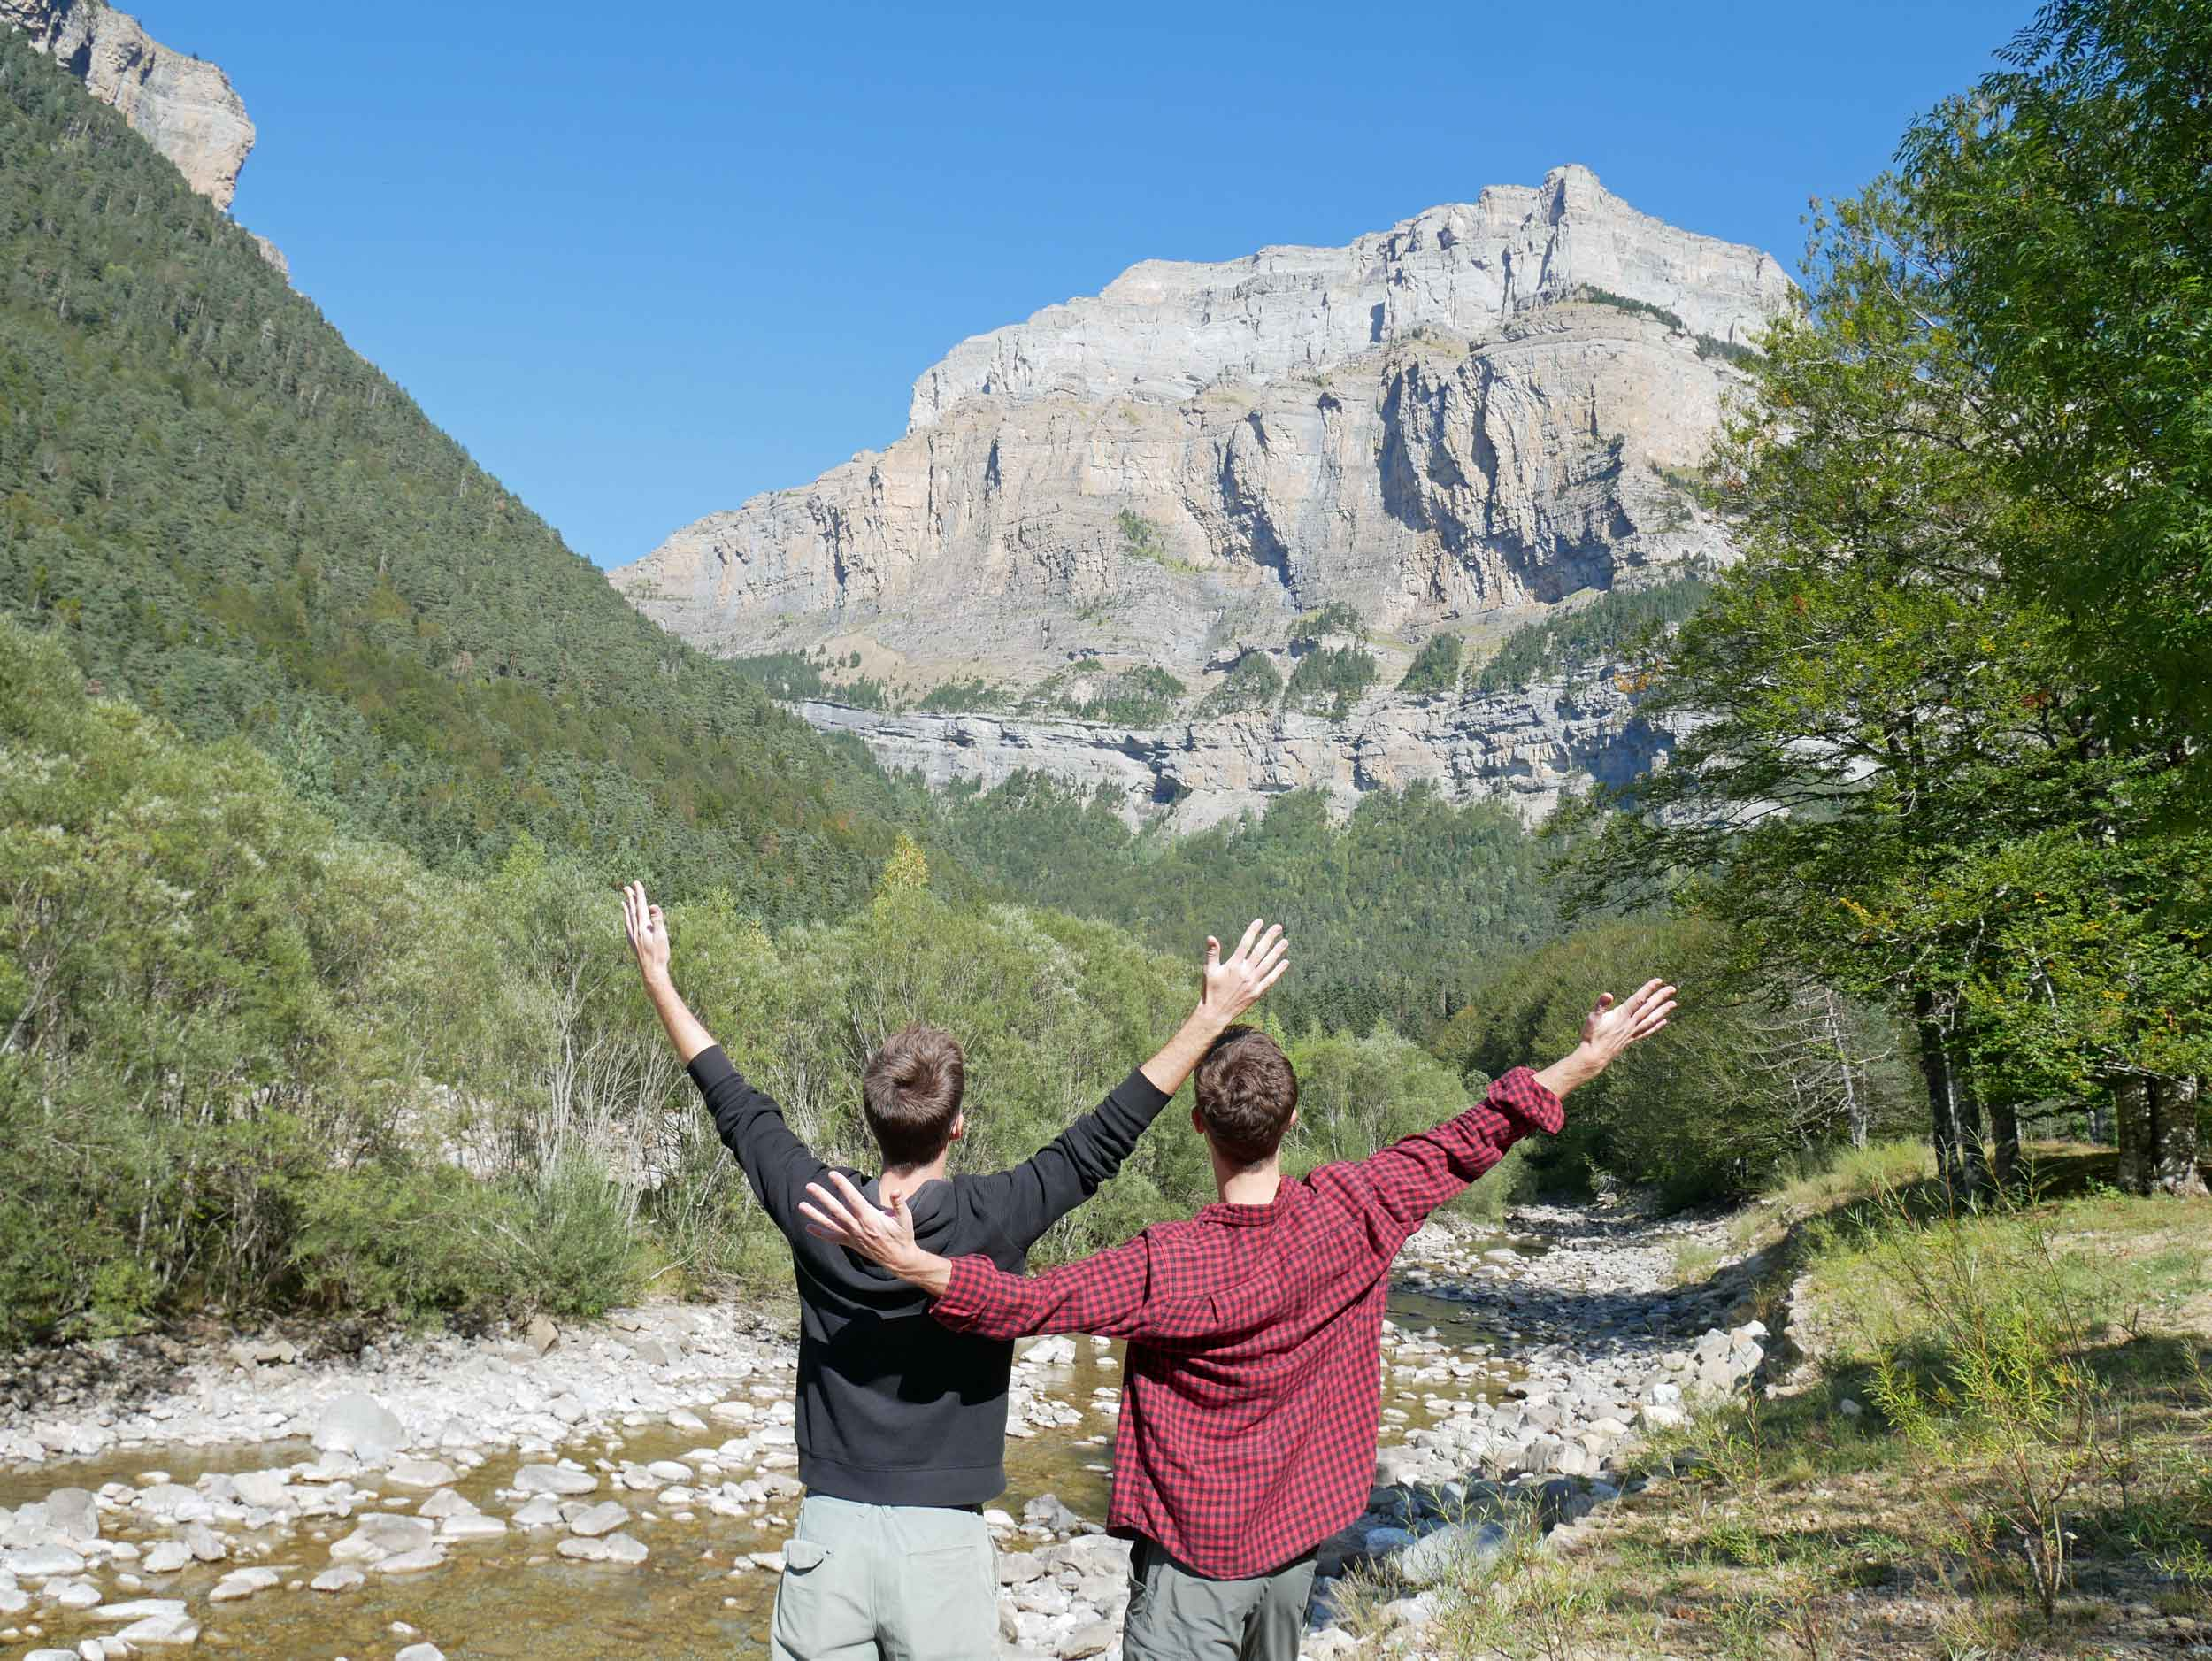 The park covers an area of more than 156 km² and is among the most important national parks in Europe, and yet possibly one of the least known – and we loved it!